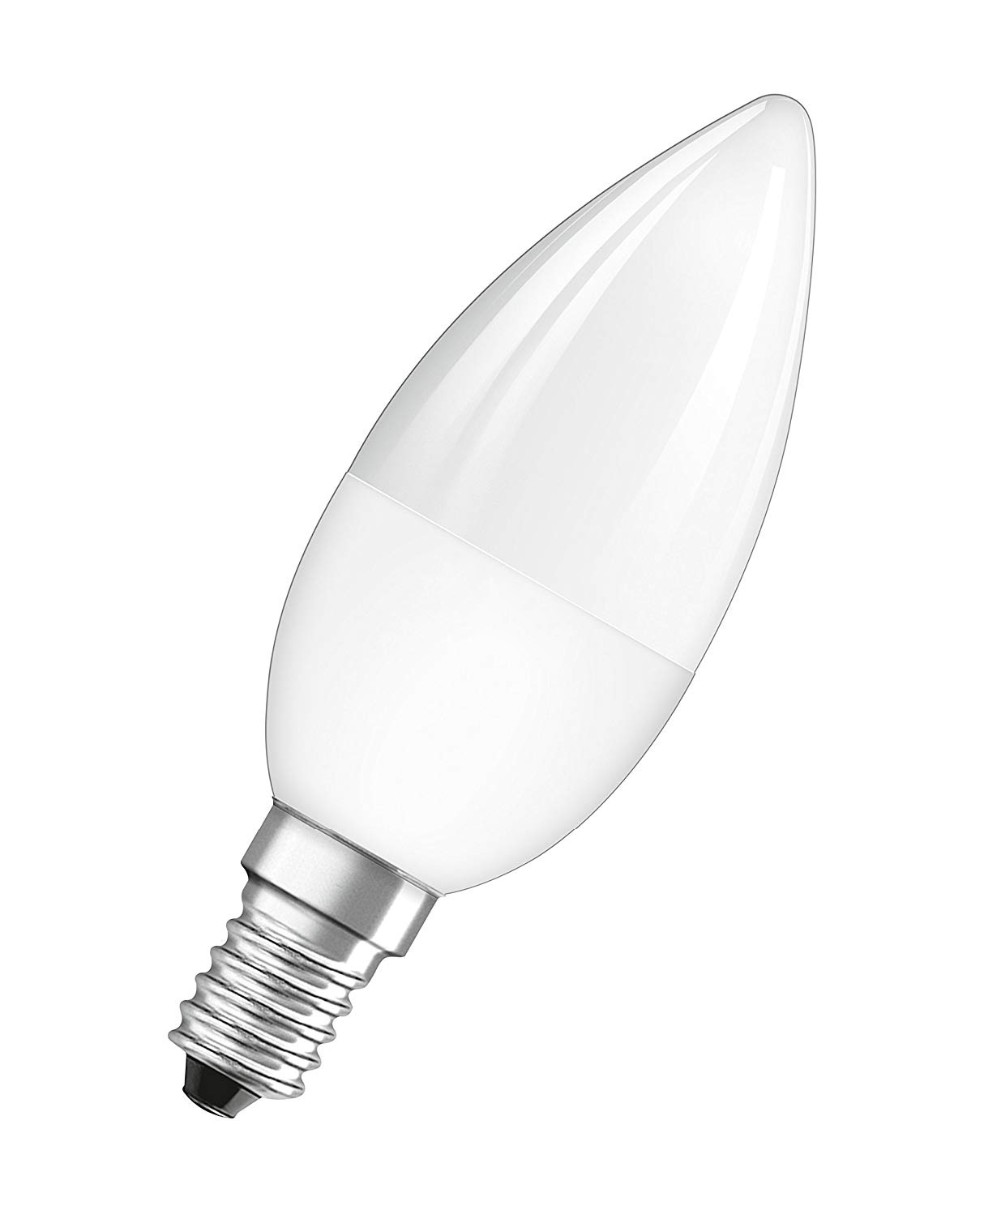 Hot selling in USA and Europe E14 Small Edison Screw LED Candle Light Bulbs Compatible with Alexa Google Home